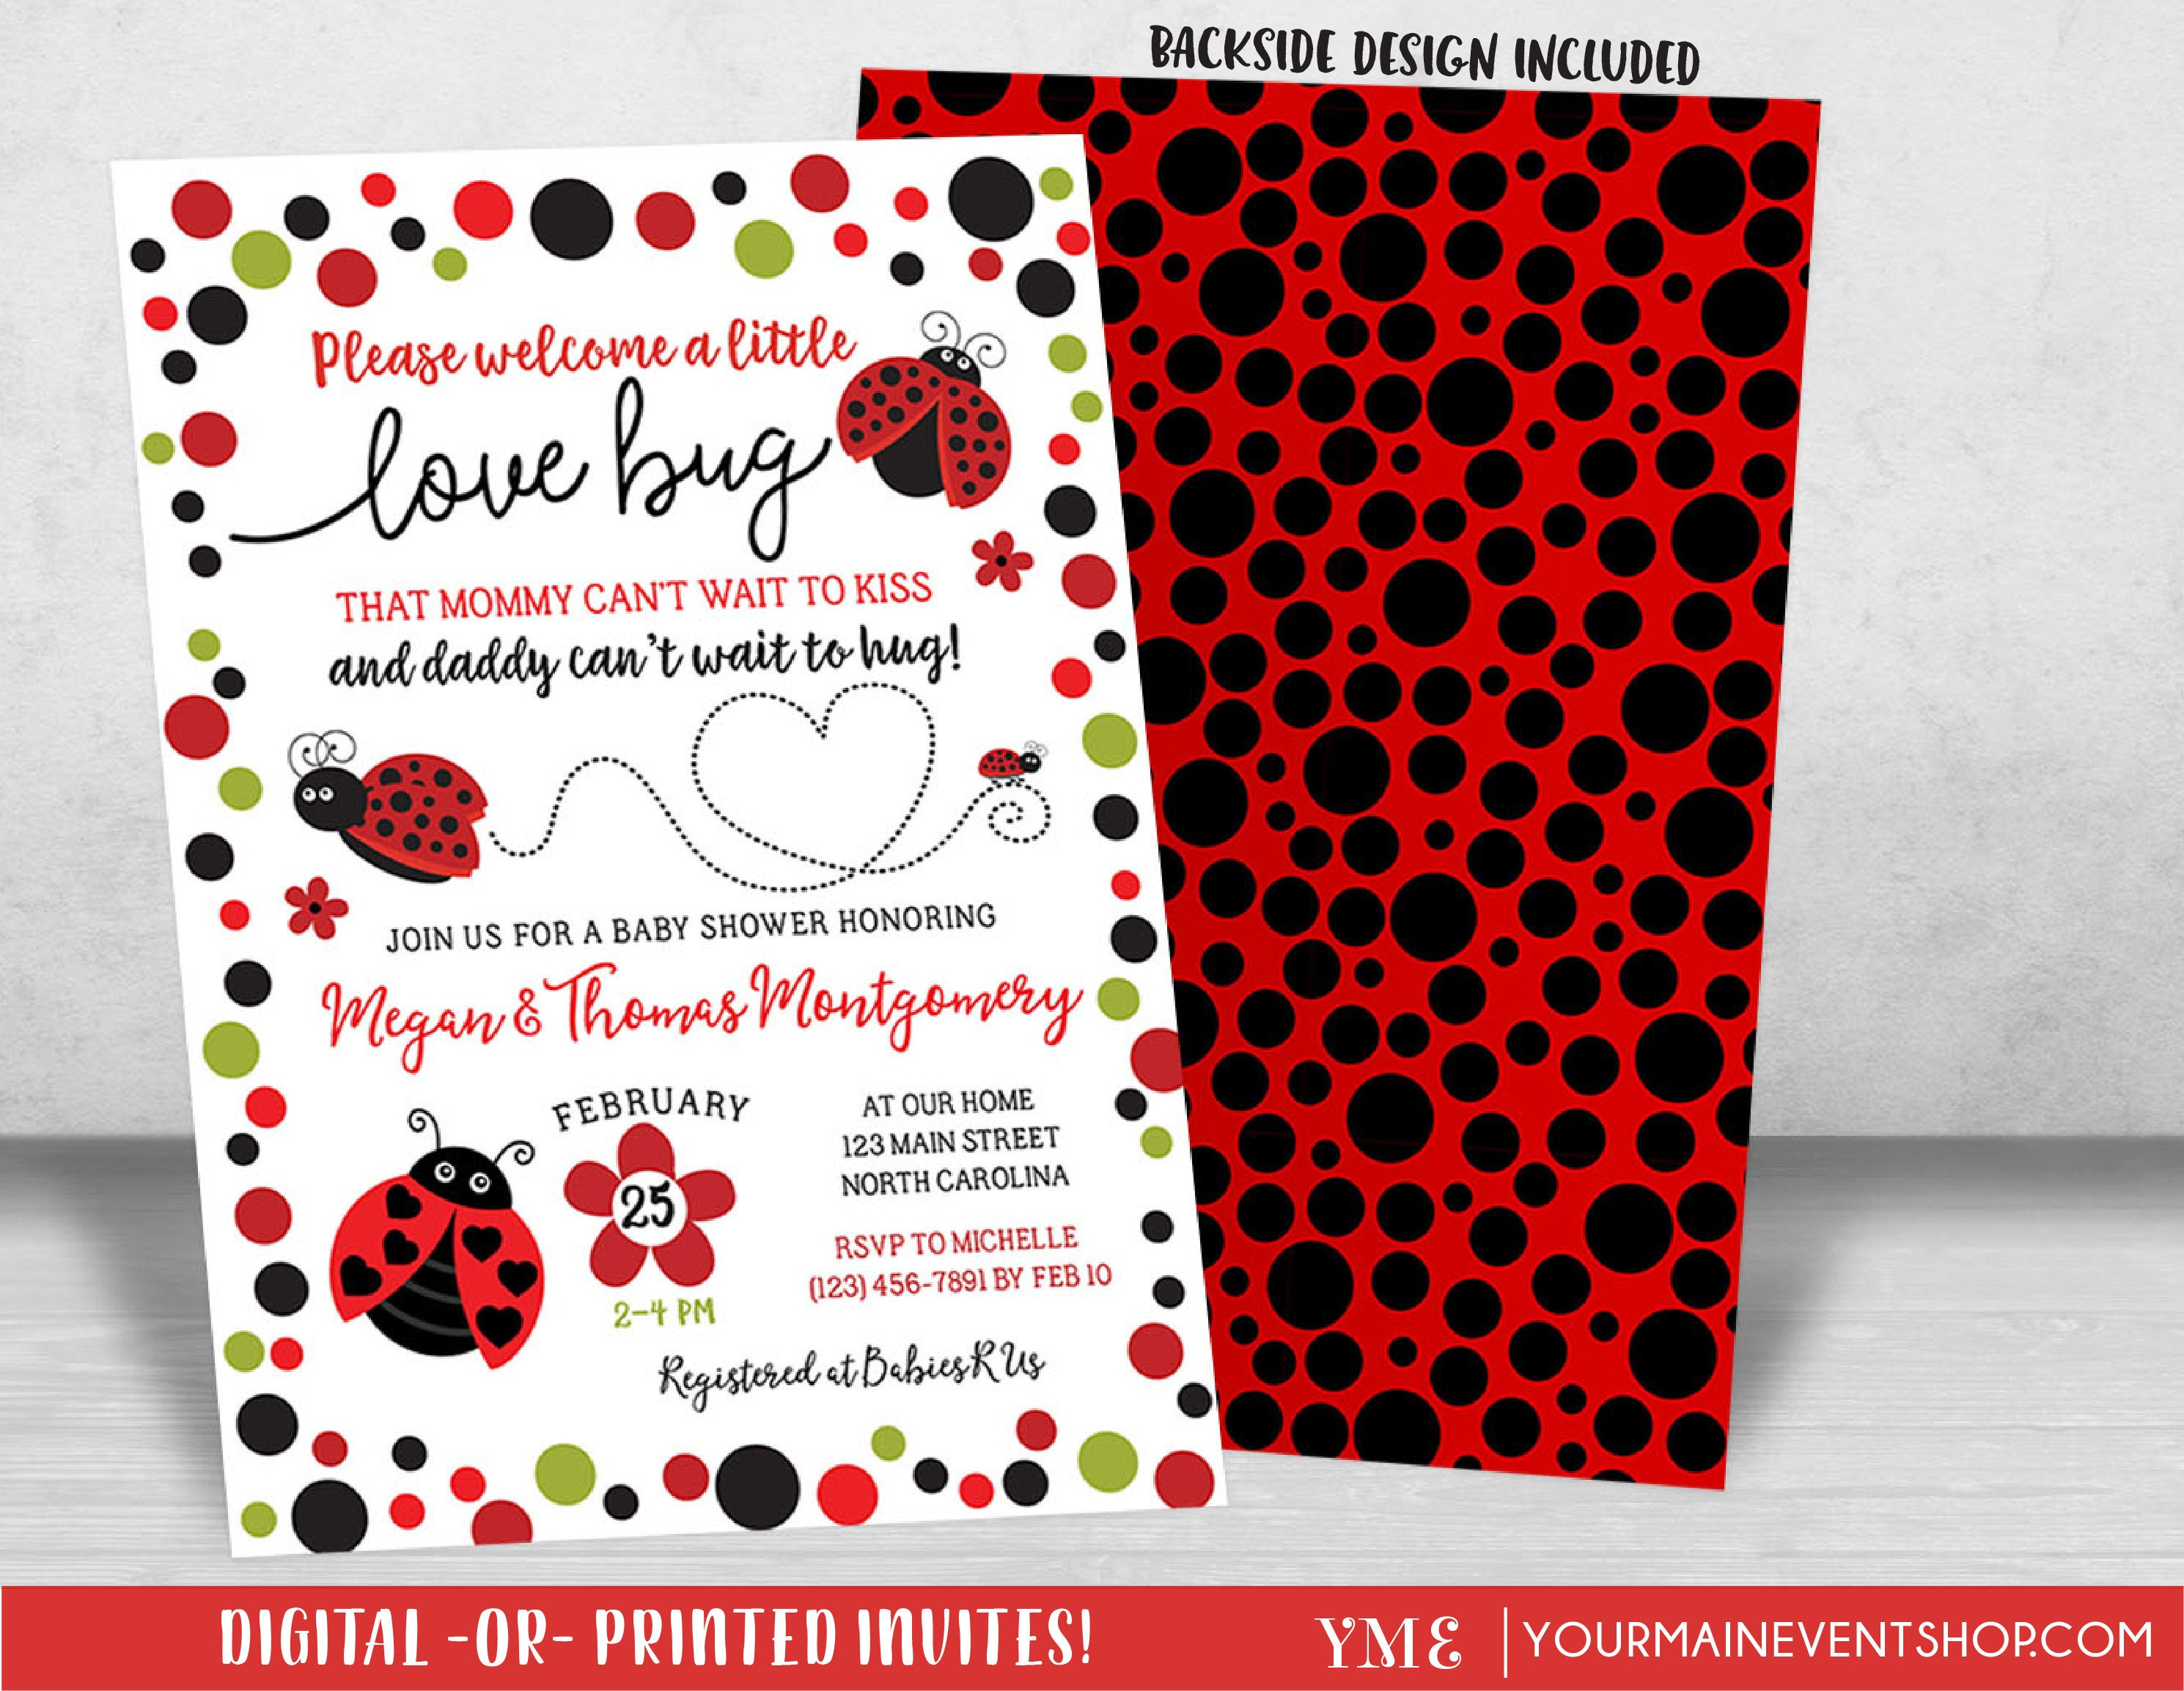 Ladybug Baby Shower Invitation, Lady Bug Little Lady Baby Shower ...